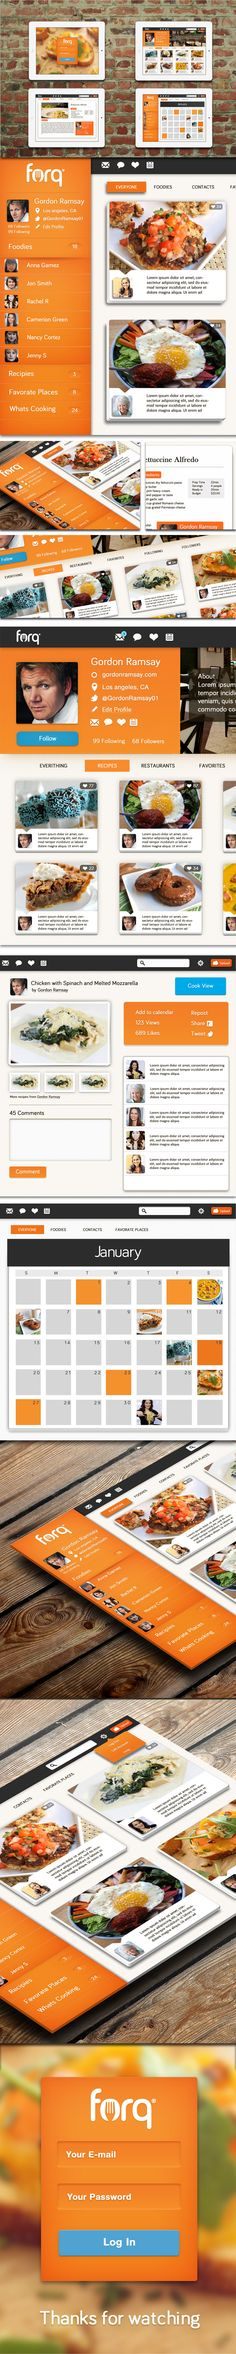 Food Network App by Isaac Sanchez, via Behance